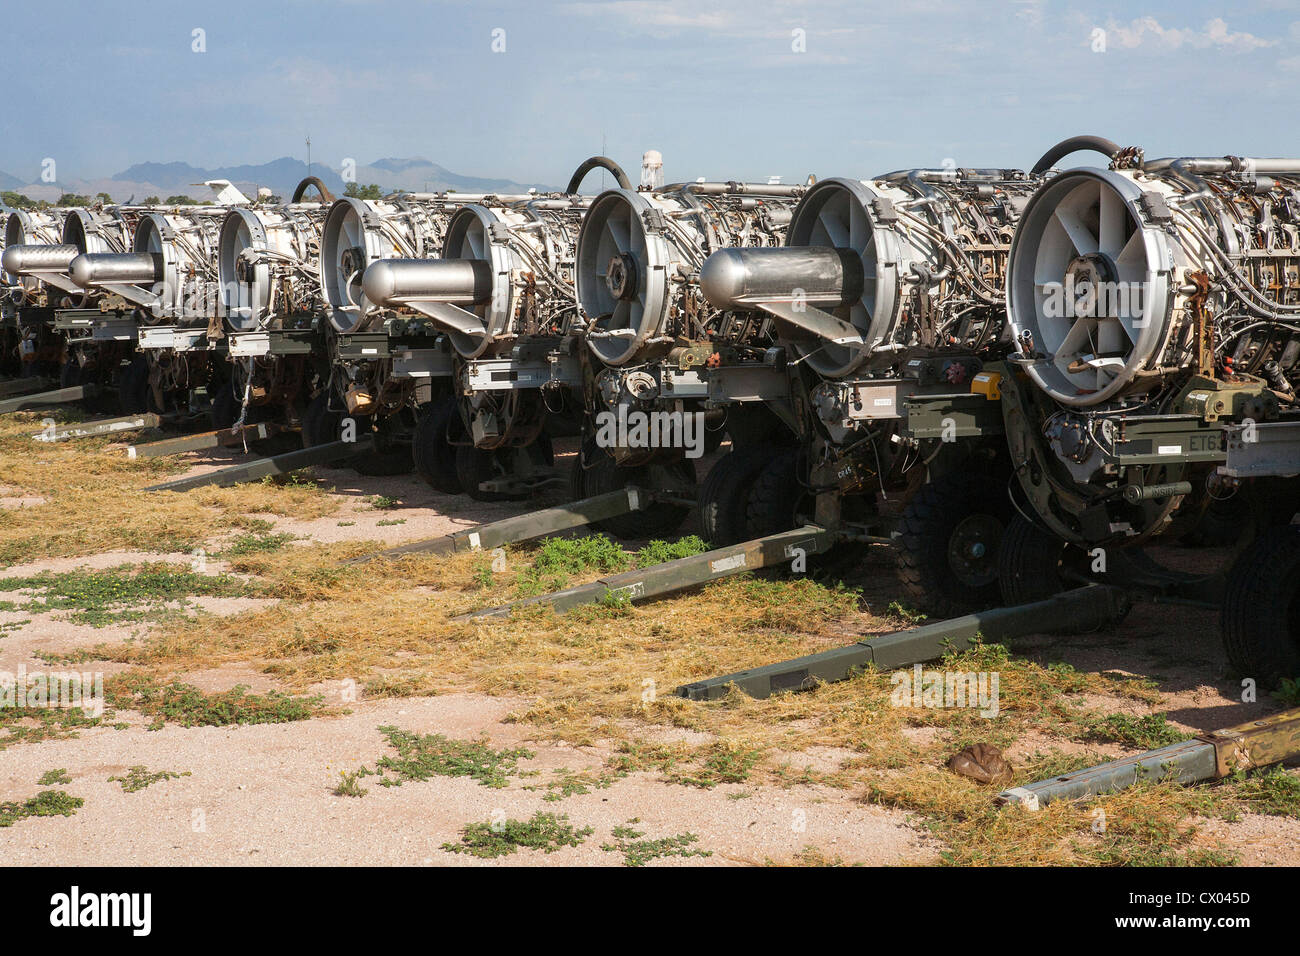 Surplus jet engines in storage at the 309th Aerospace Maintenance and Regeneration Group at Davis-Monthan Air Force - Stock Image